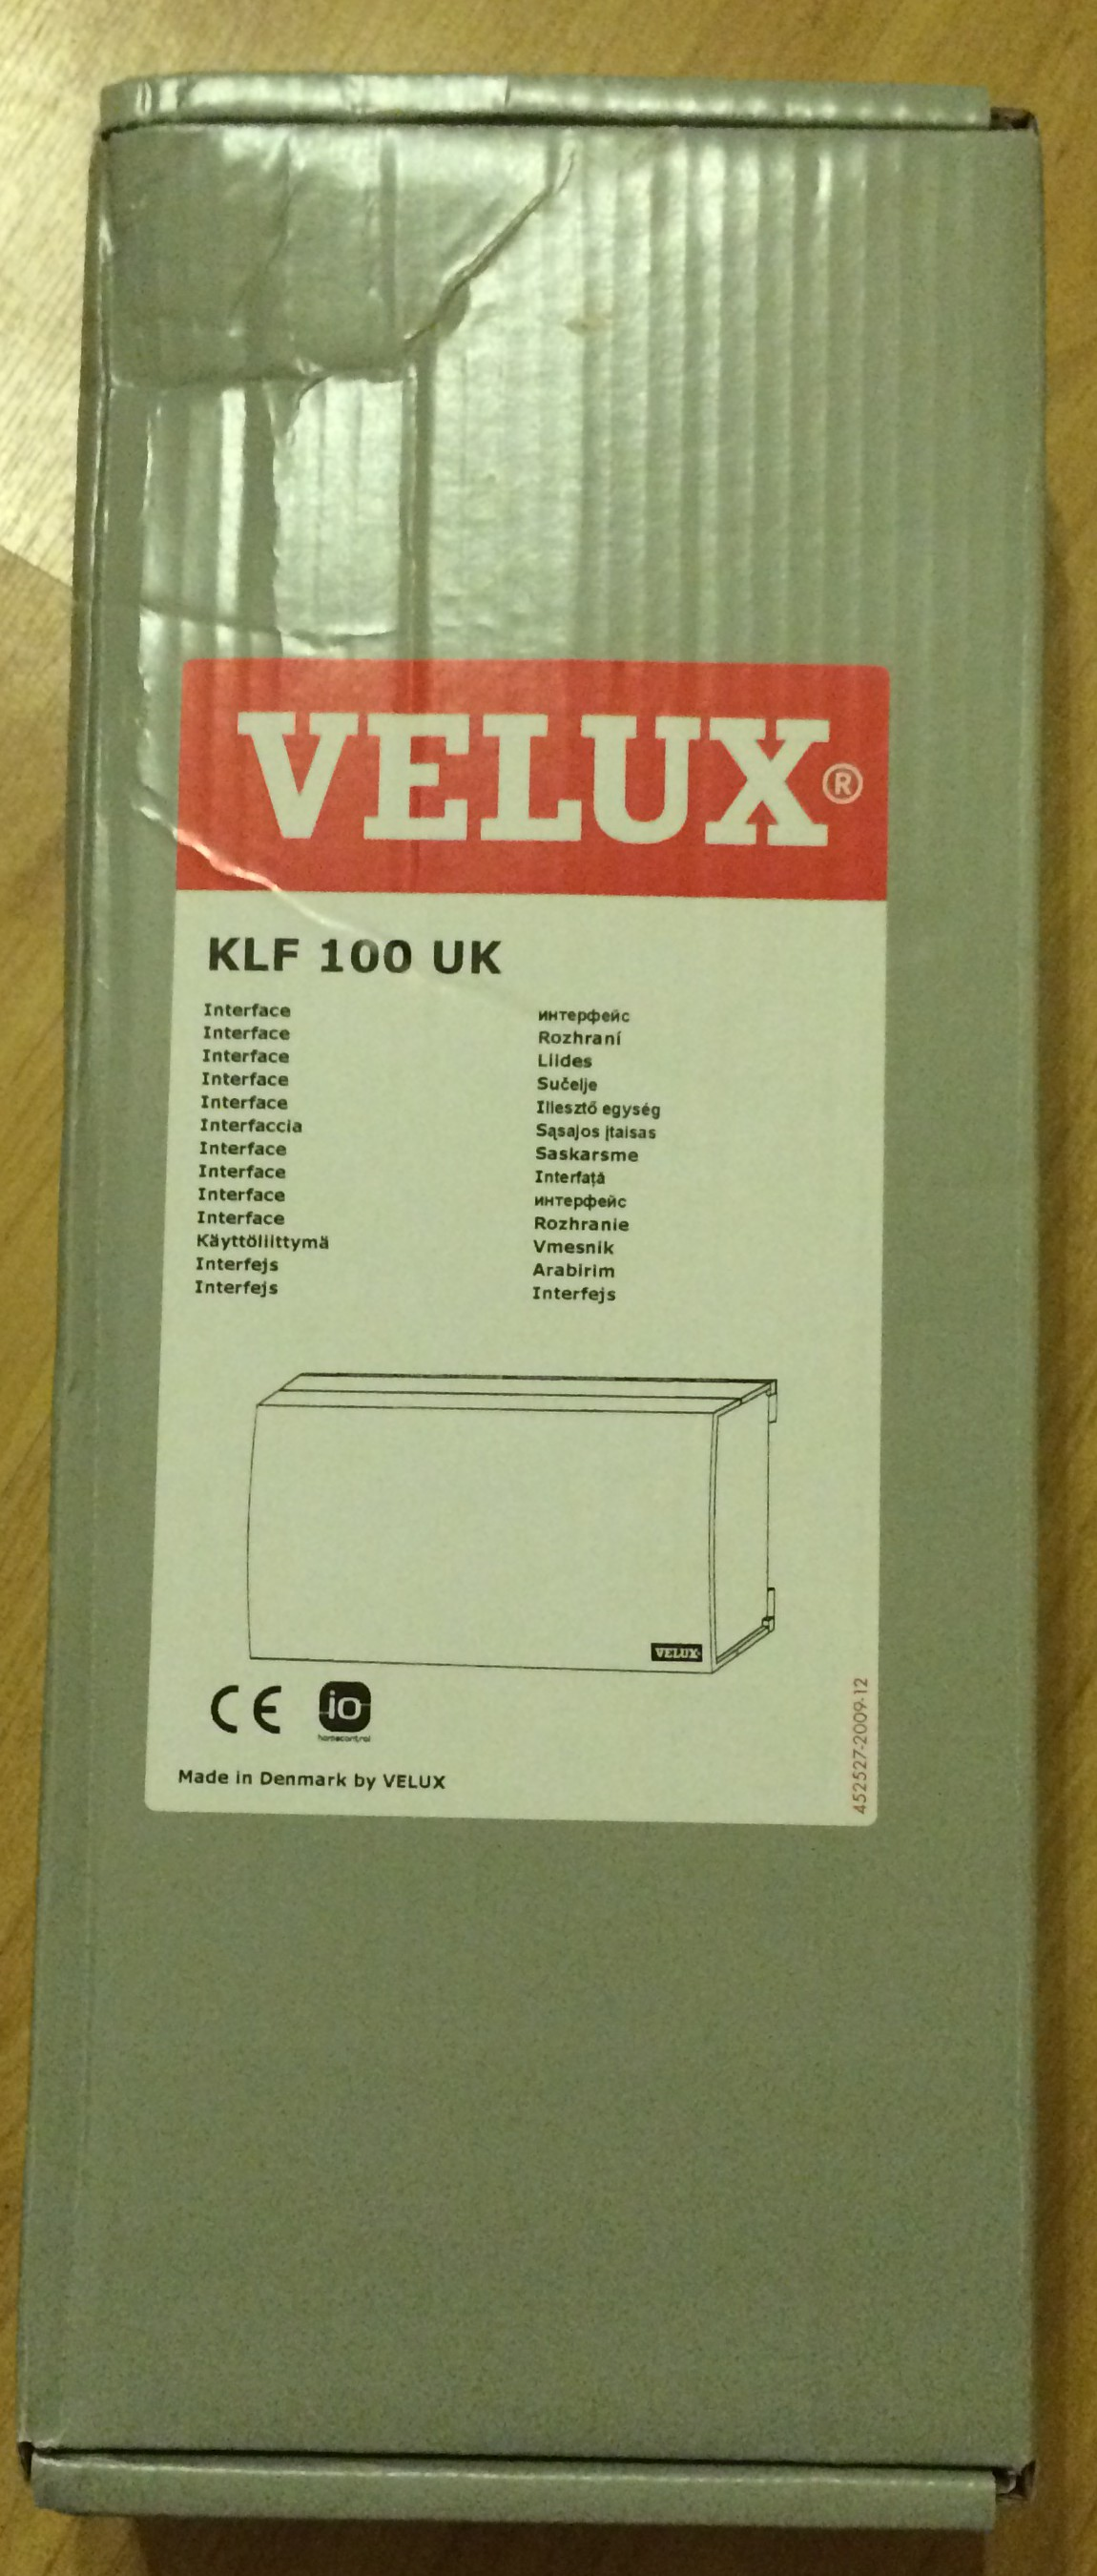 klf100_boxed e1448917936740 controling velux windows with fibaro the world that is k2aab velux klf 100 wiring diagram at gsmportal.co